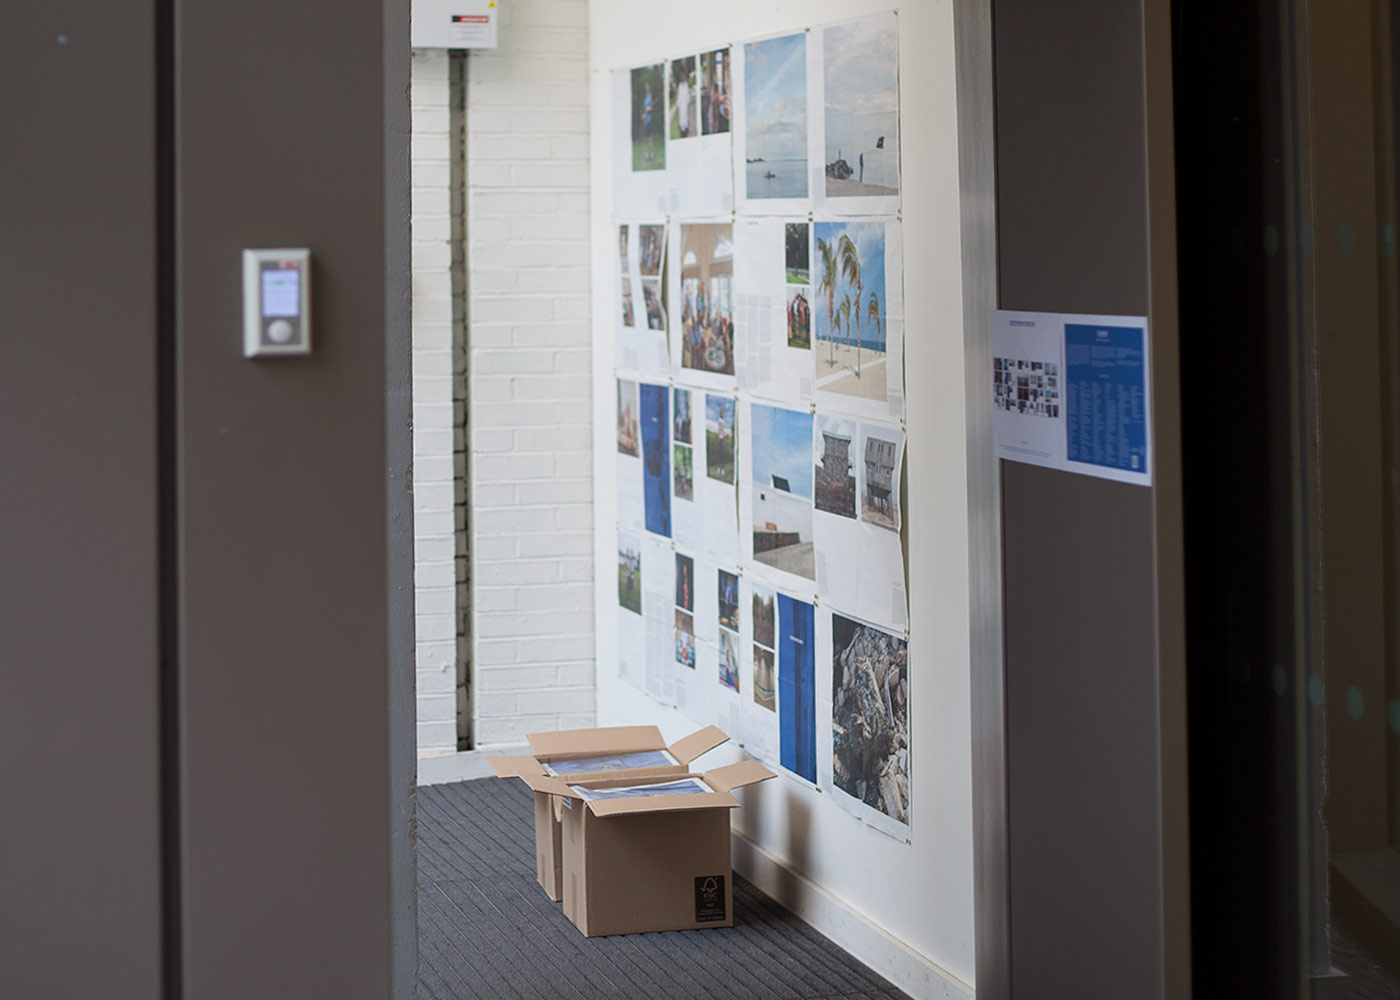 Ə /UH/-BOOKS: PROJECT SPACE FOR PHOTOBOOK PUBLISHING